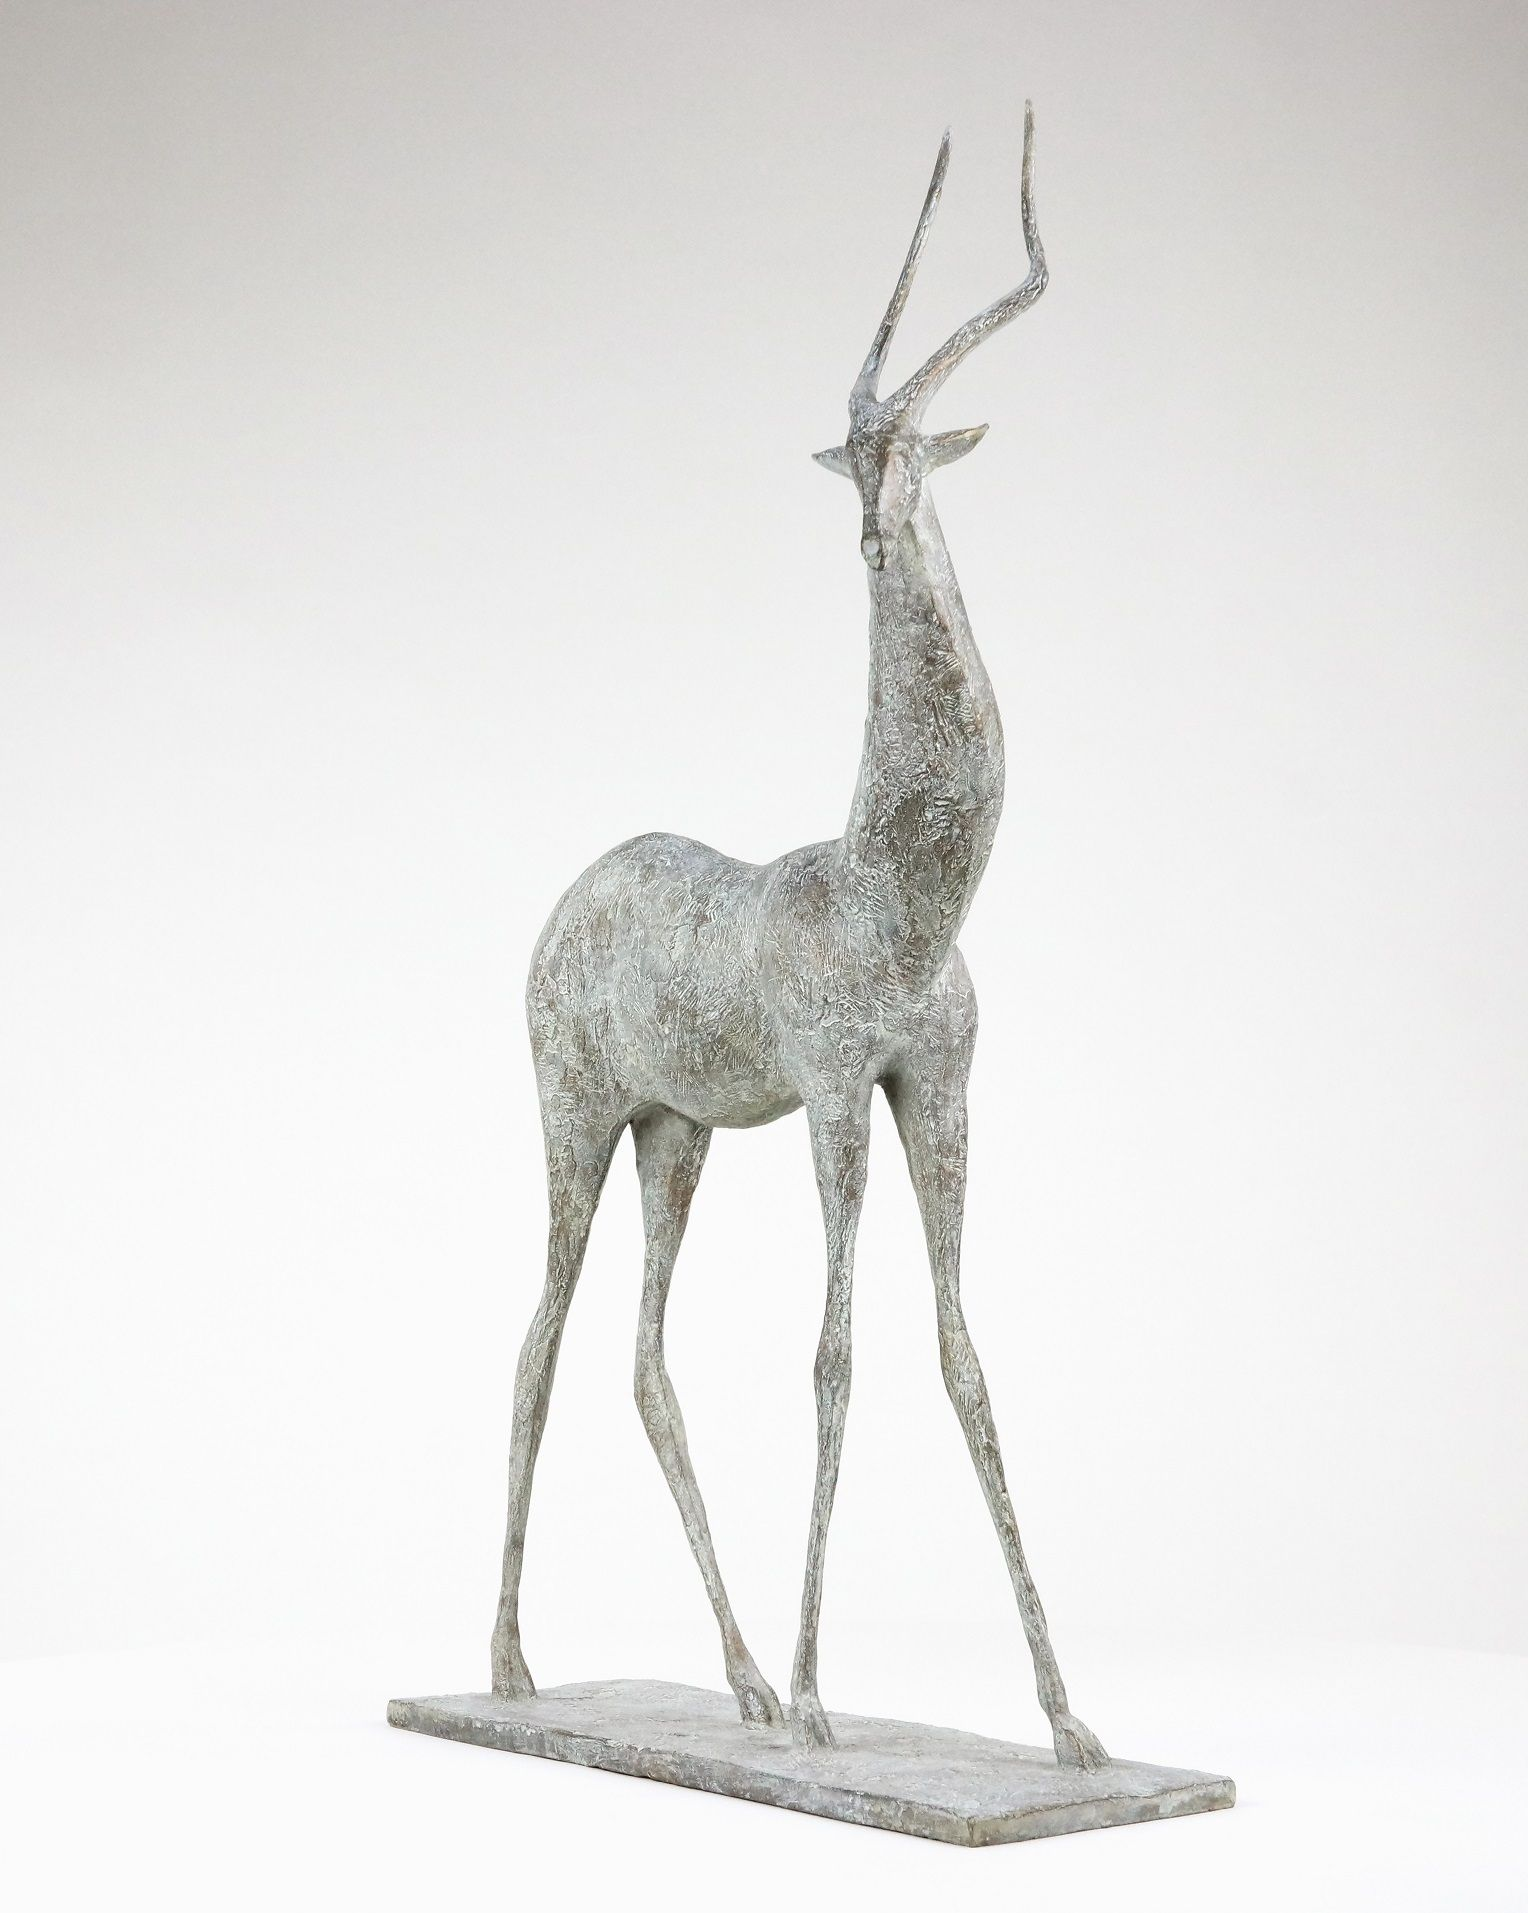 Gazelle I, Pierre Yermia,Sculpture, detail 3